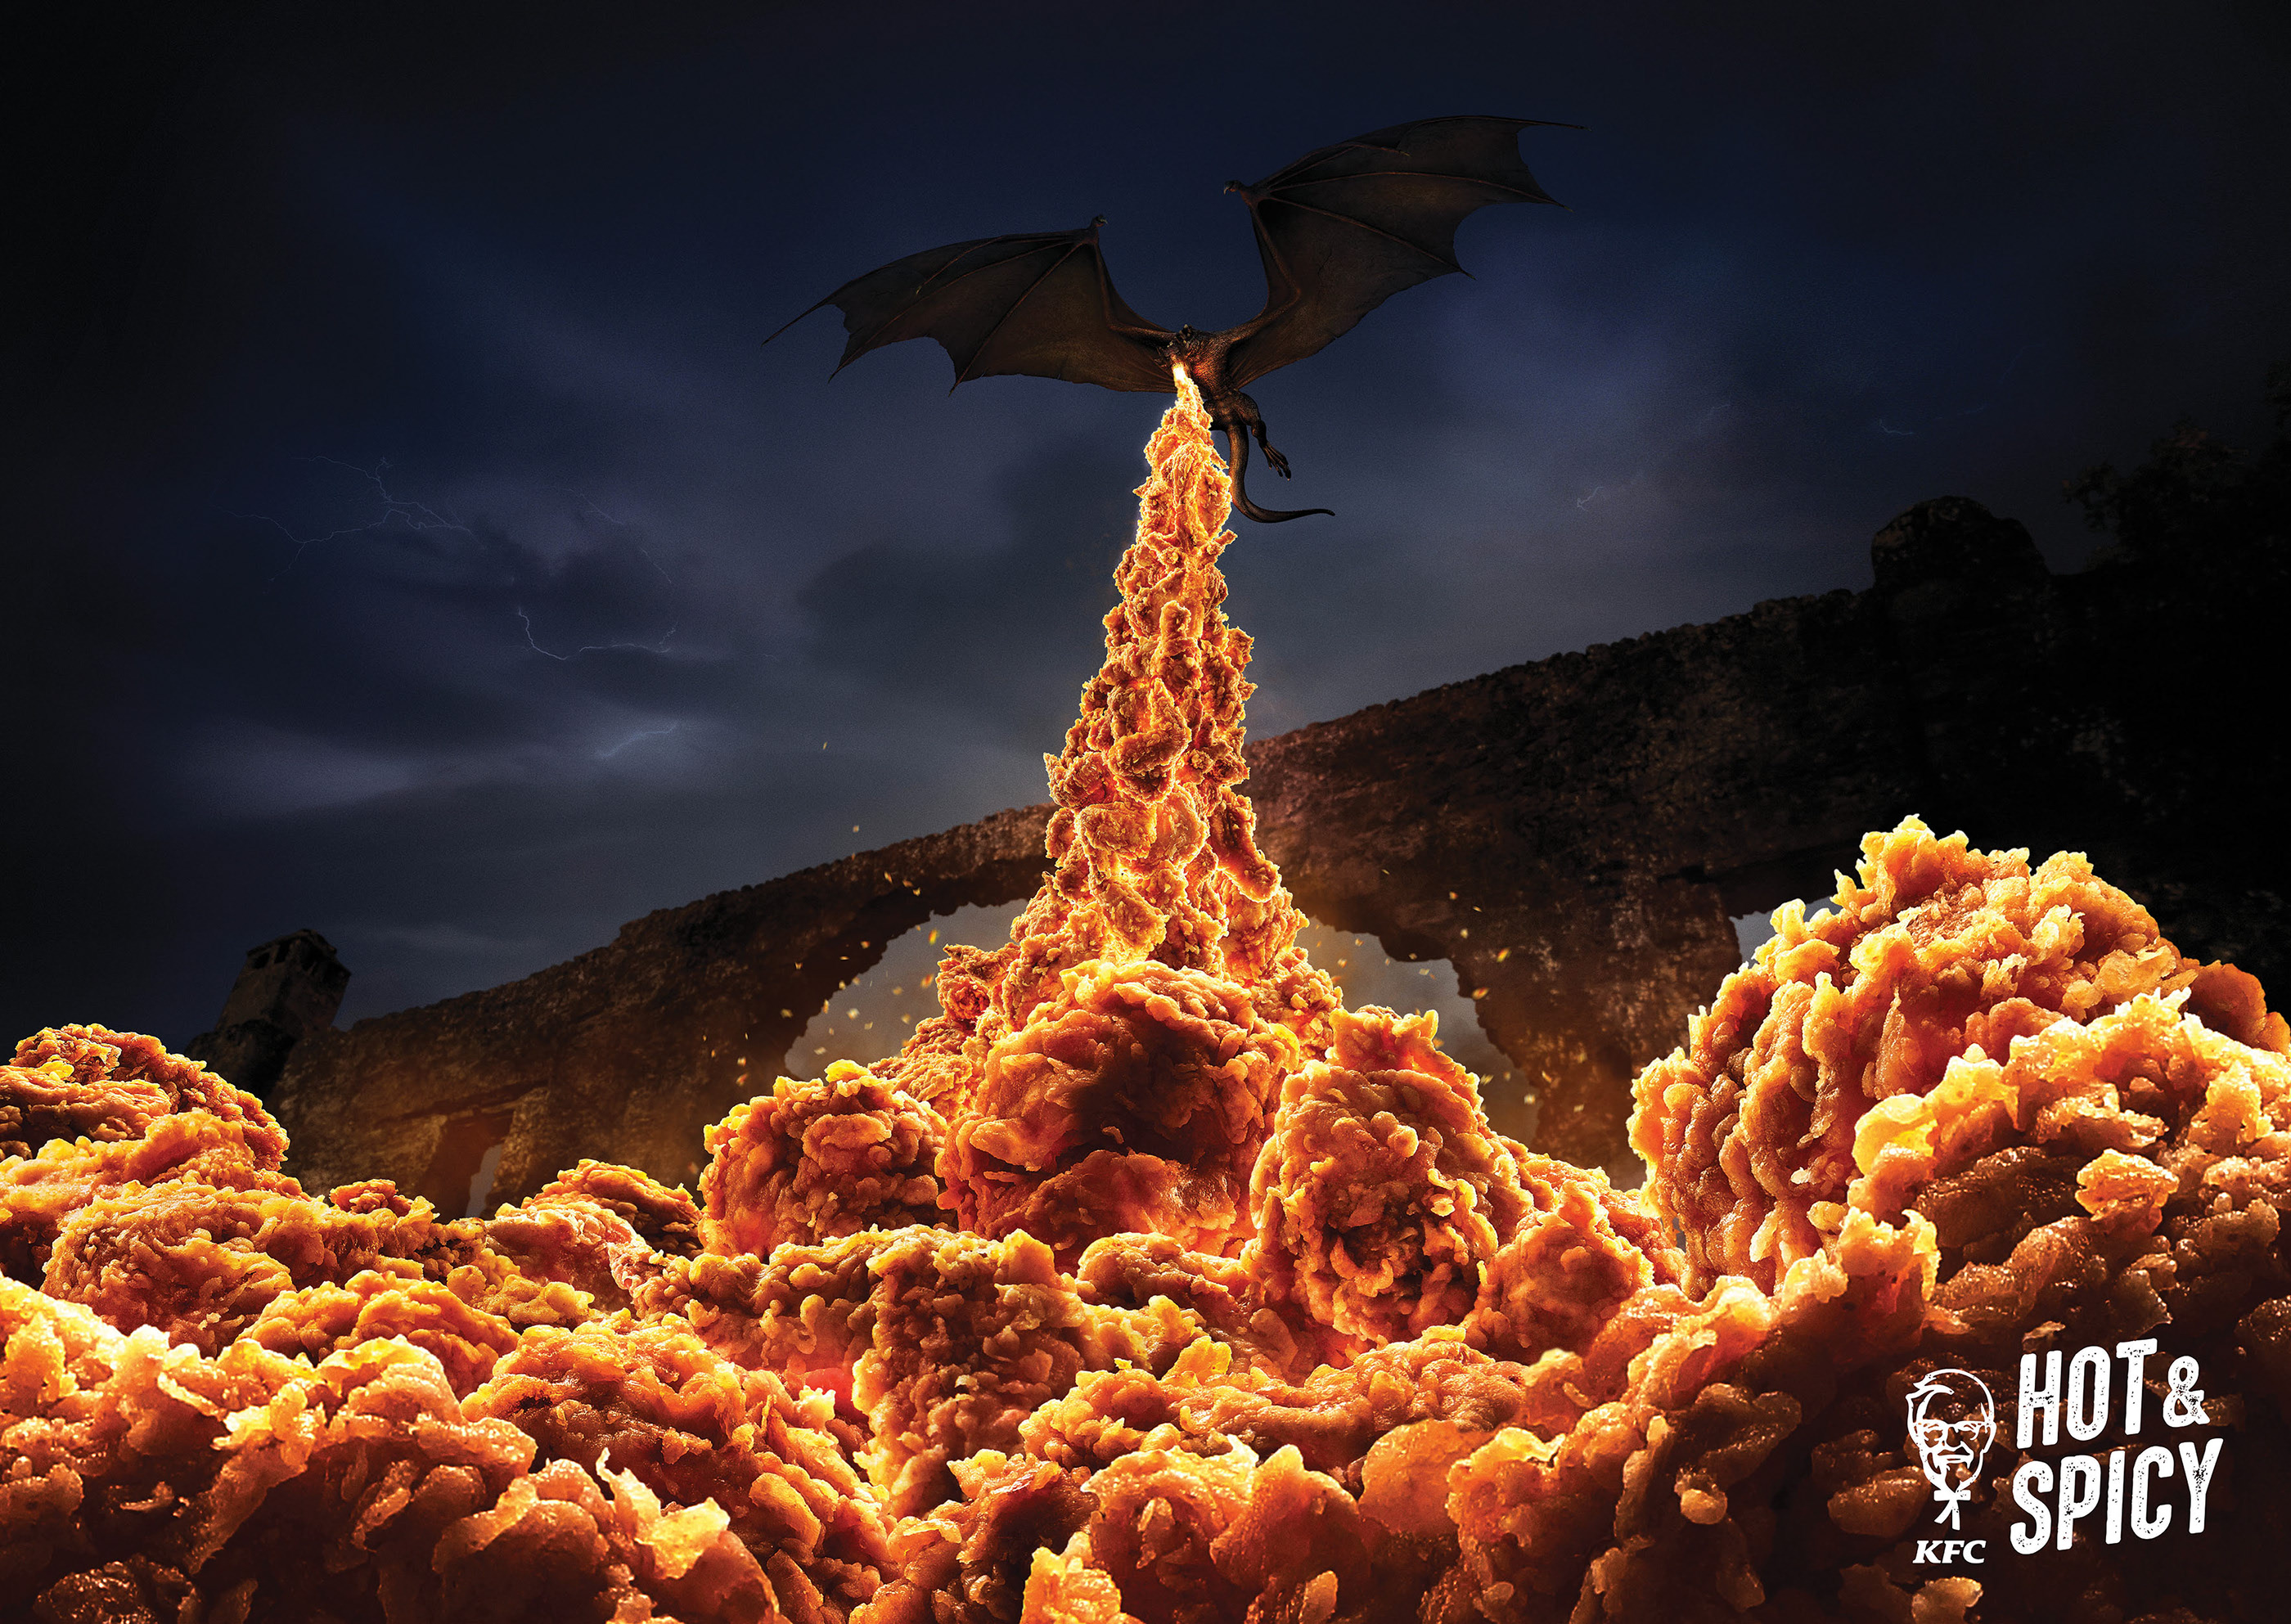 KFC Hot And Spicy - Dragon